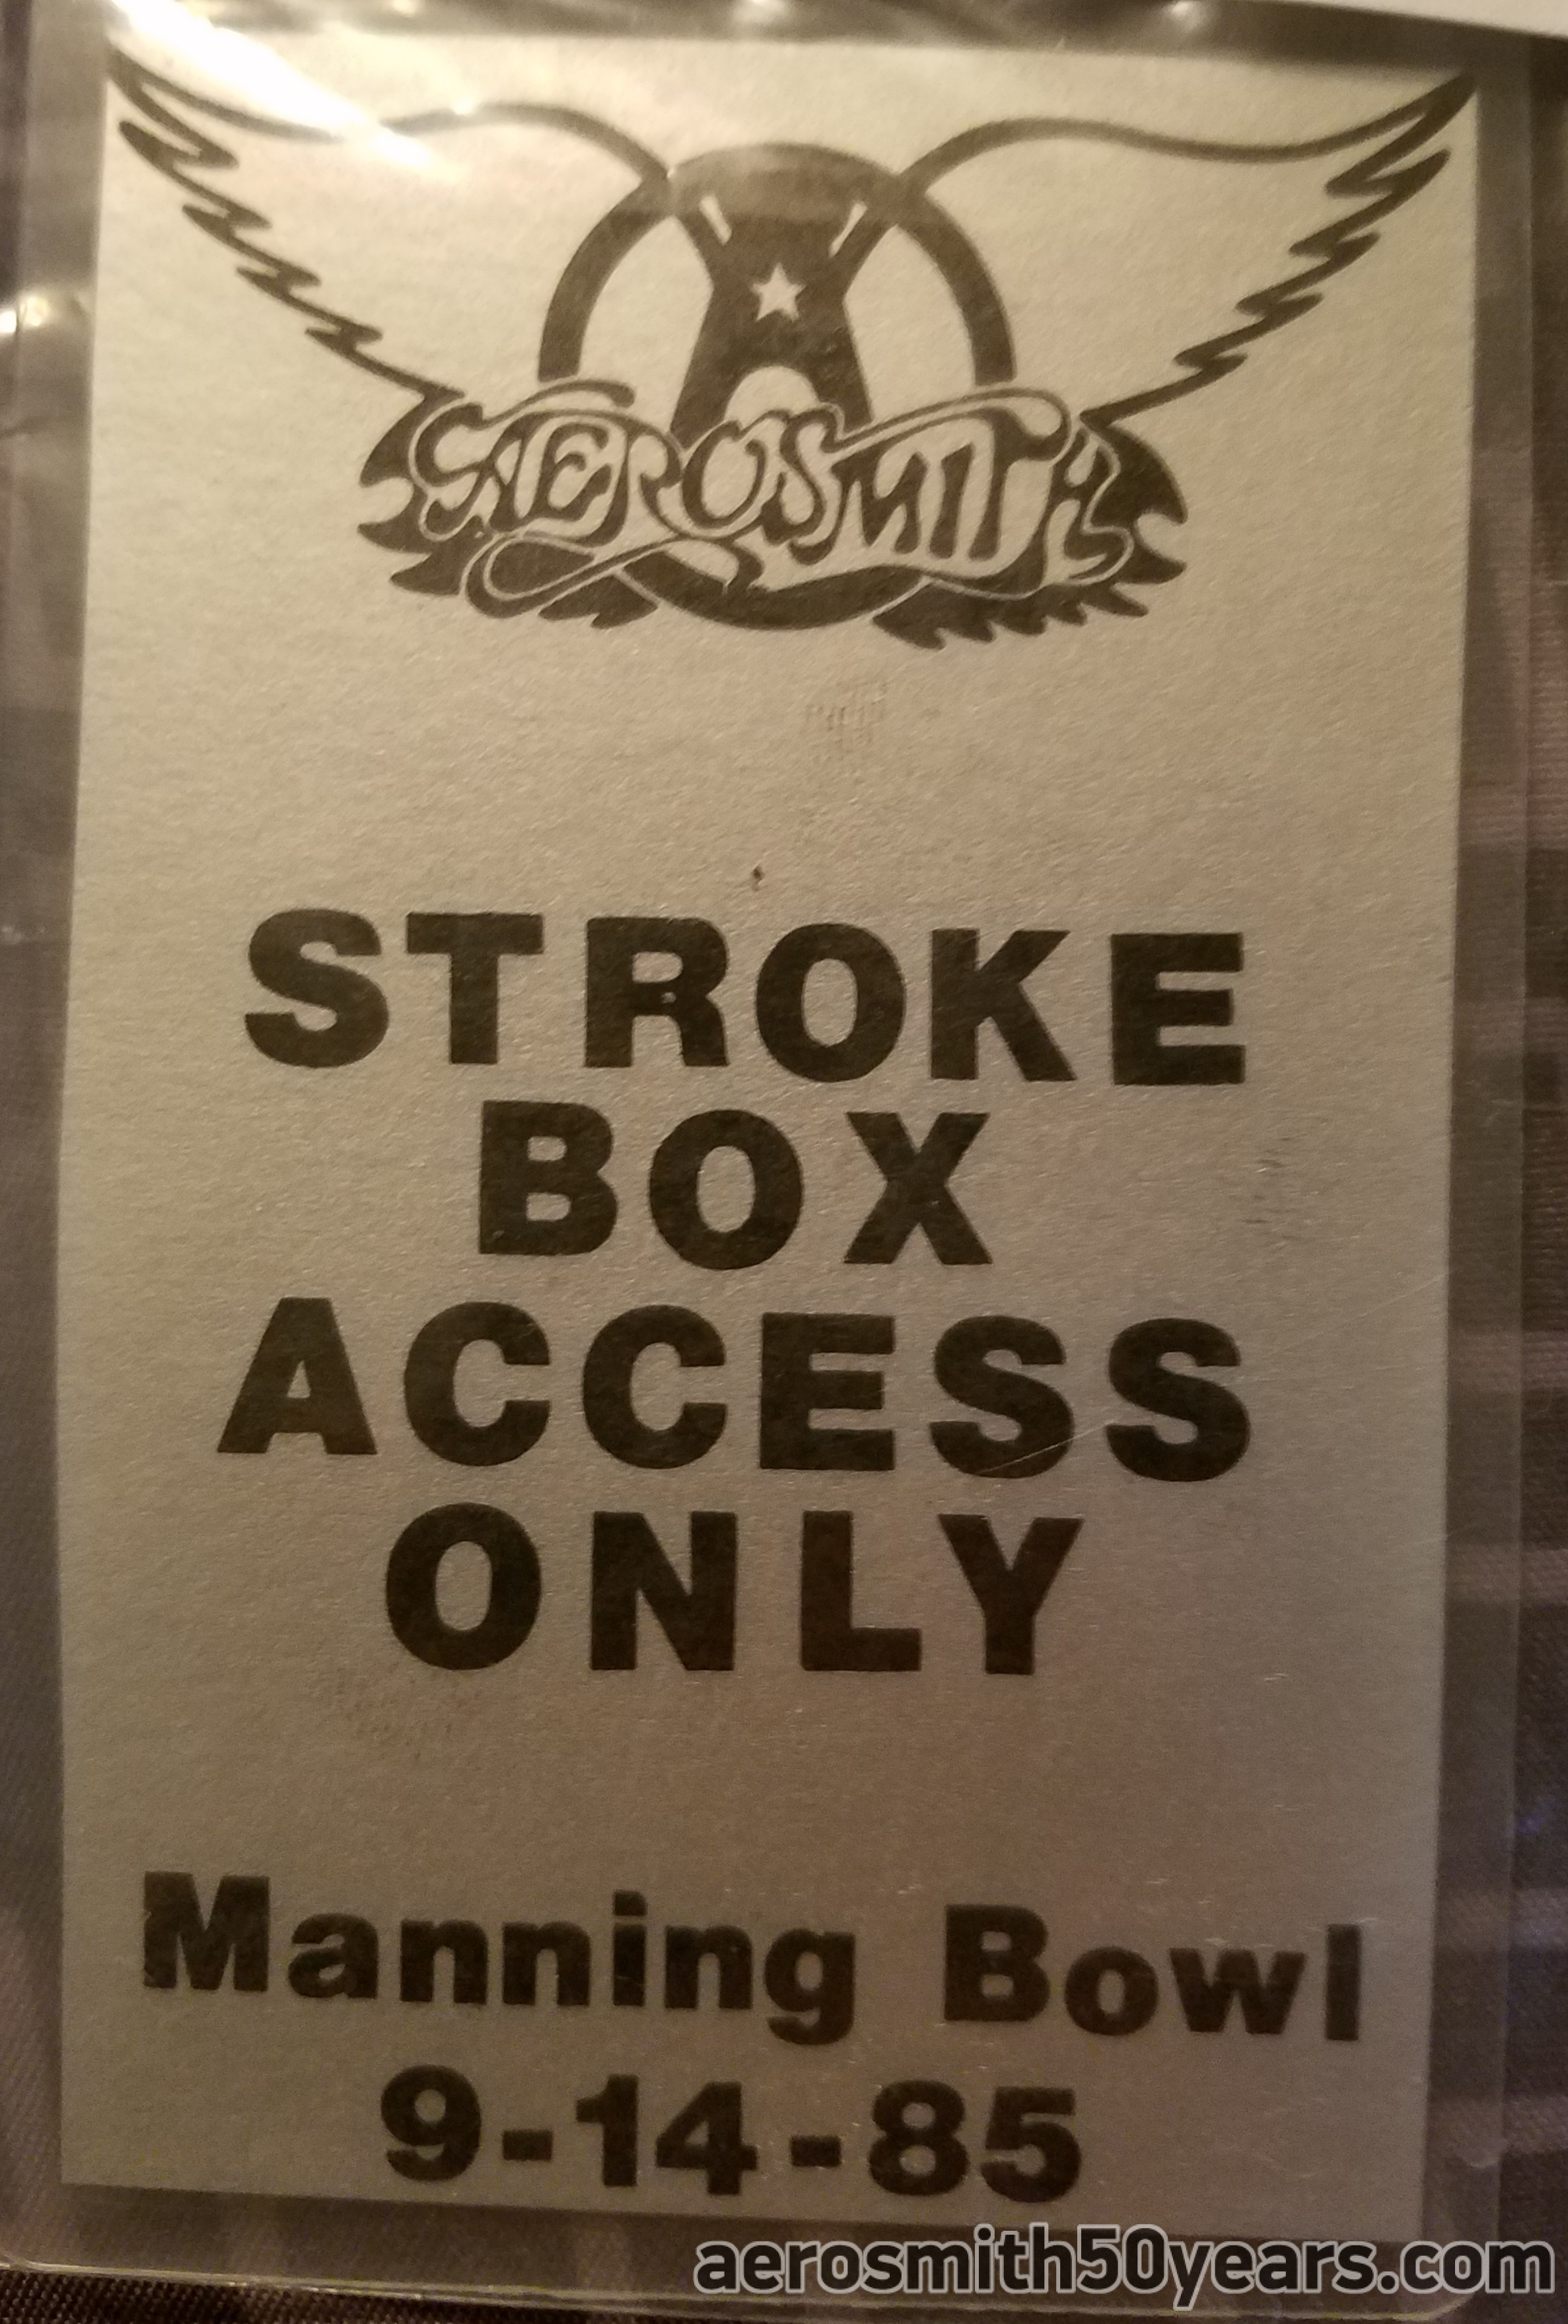 Manning Bowl, Lynn, Massachusetts. September 14, 1985. This was John Kalodner's  personal laminate pass acquired from the Kalodner auction.